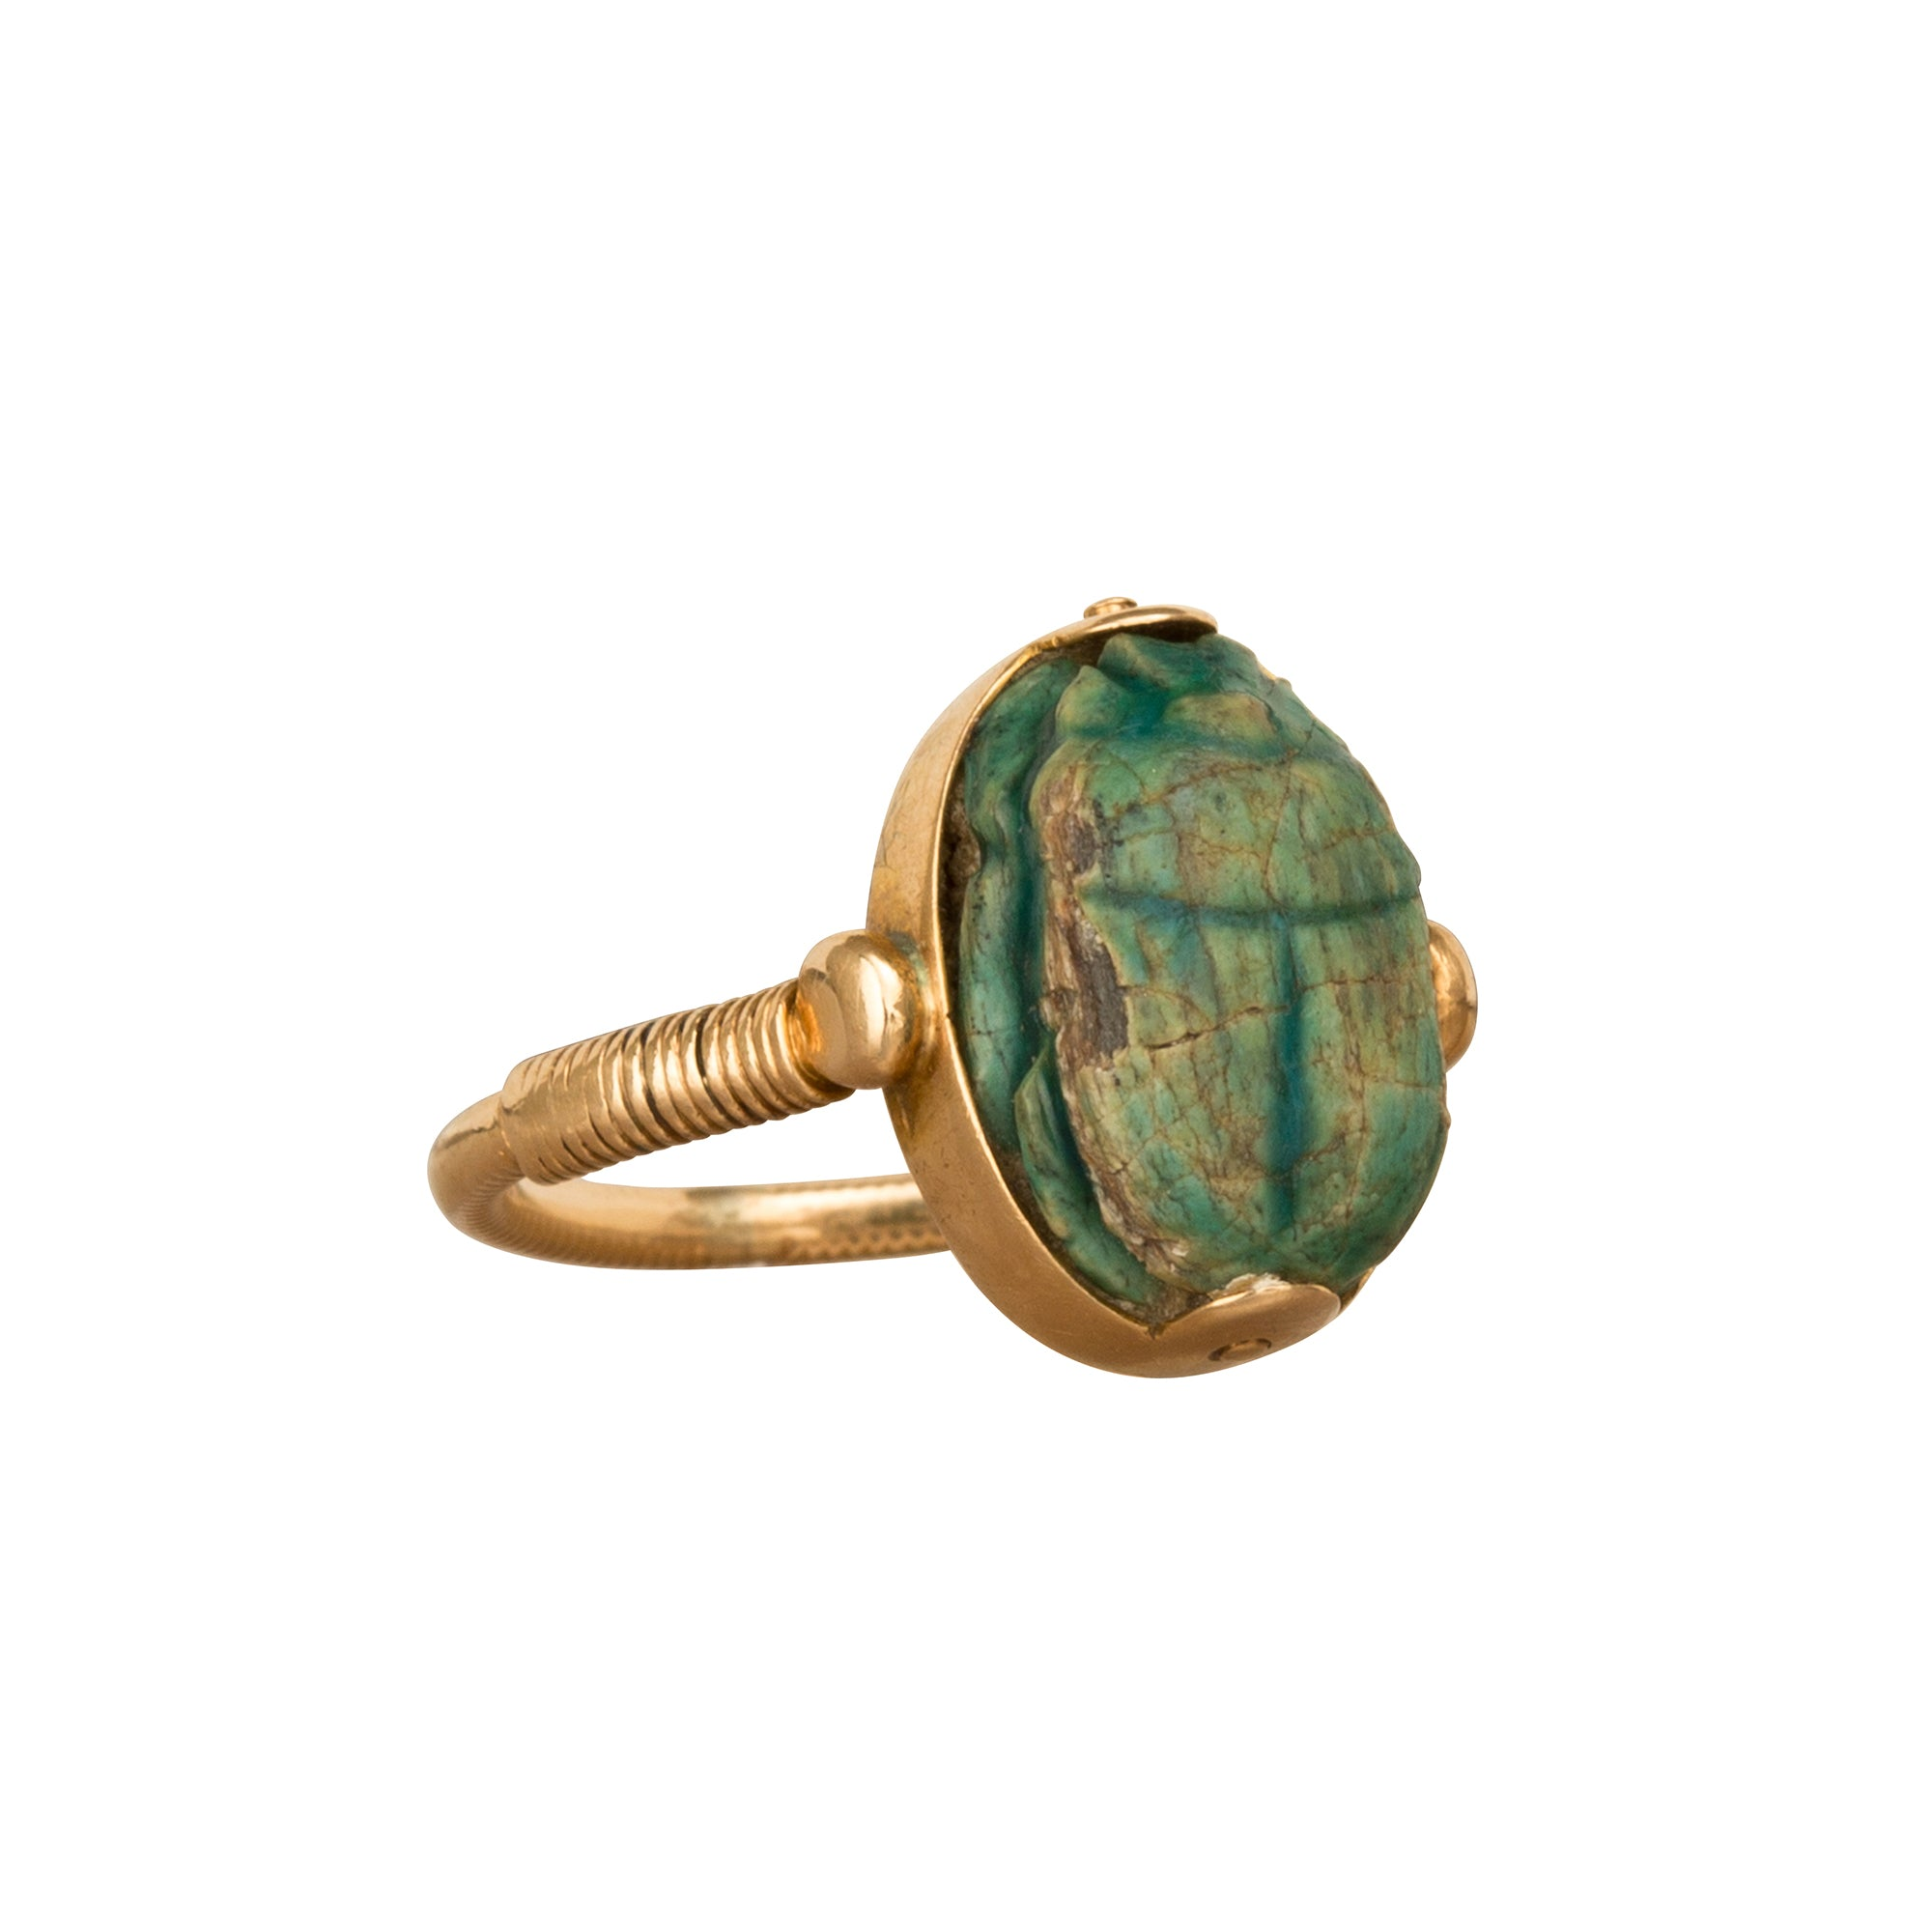 Faience Scarab Ring - Broken English Jewelry